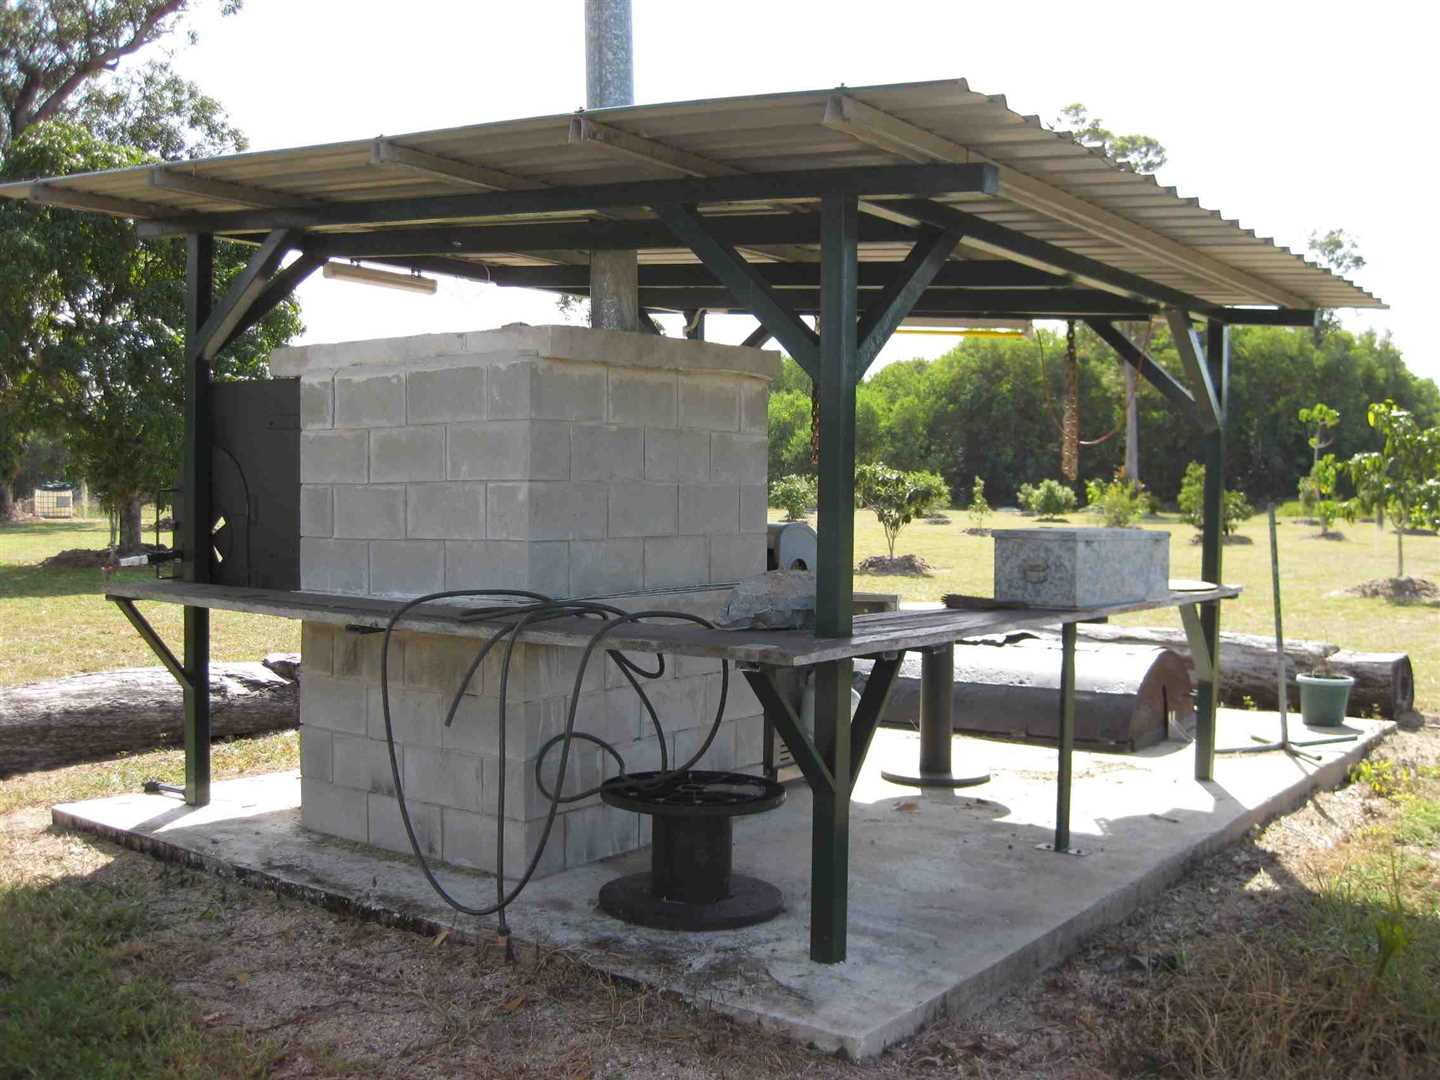 View of part of BBQ area, photo 1